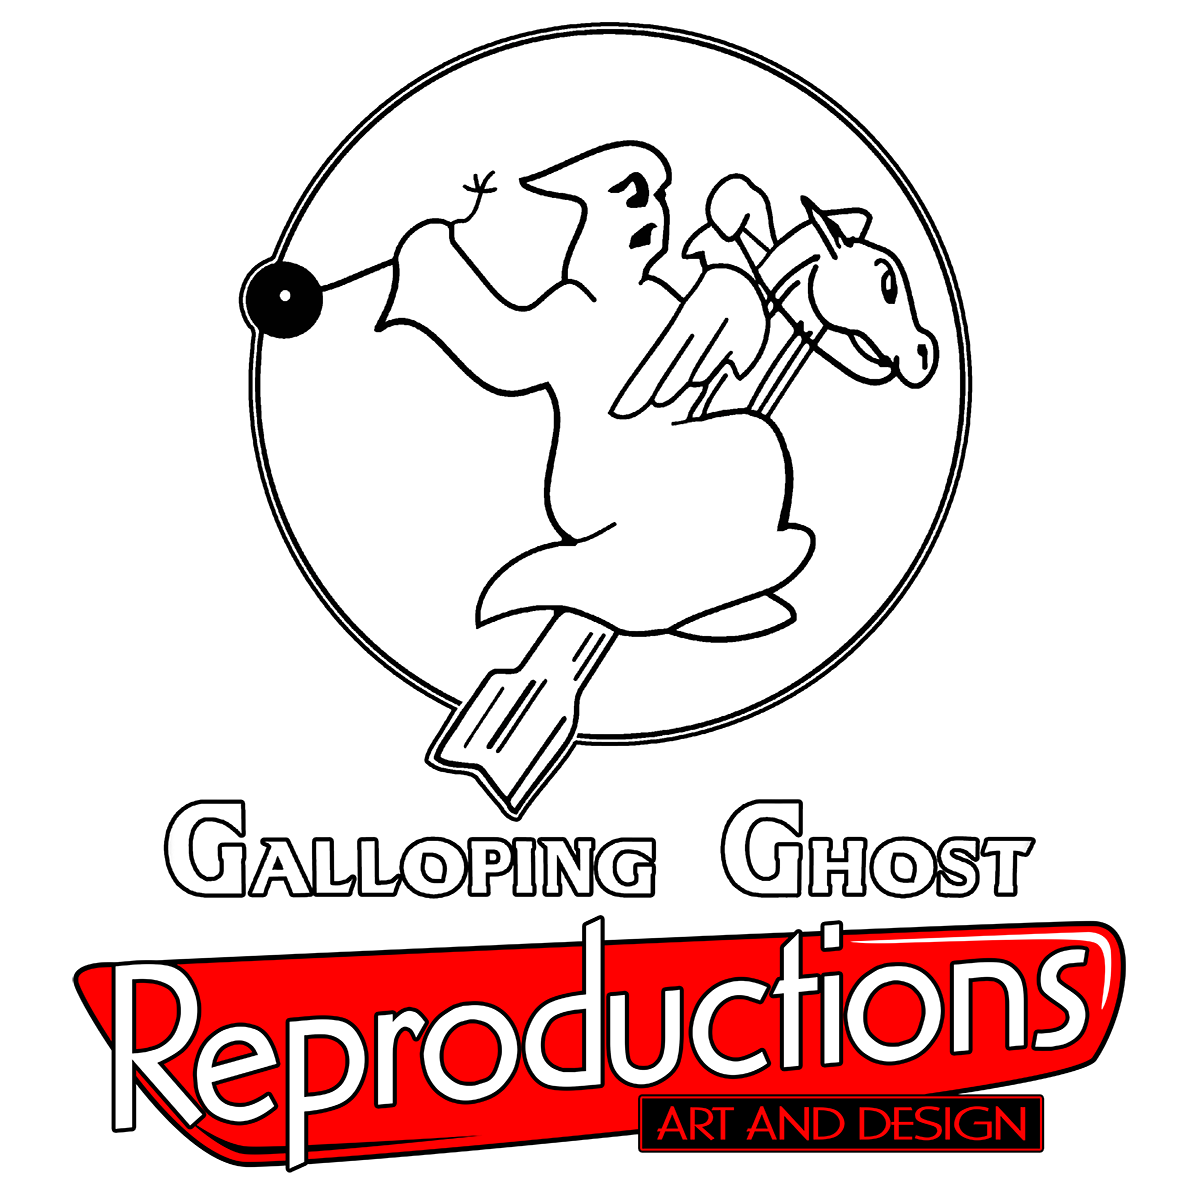 Galloping Ghost Reproductions